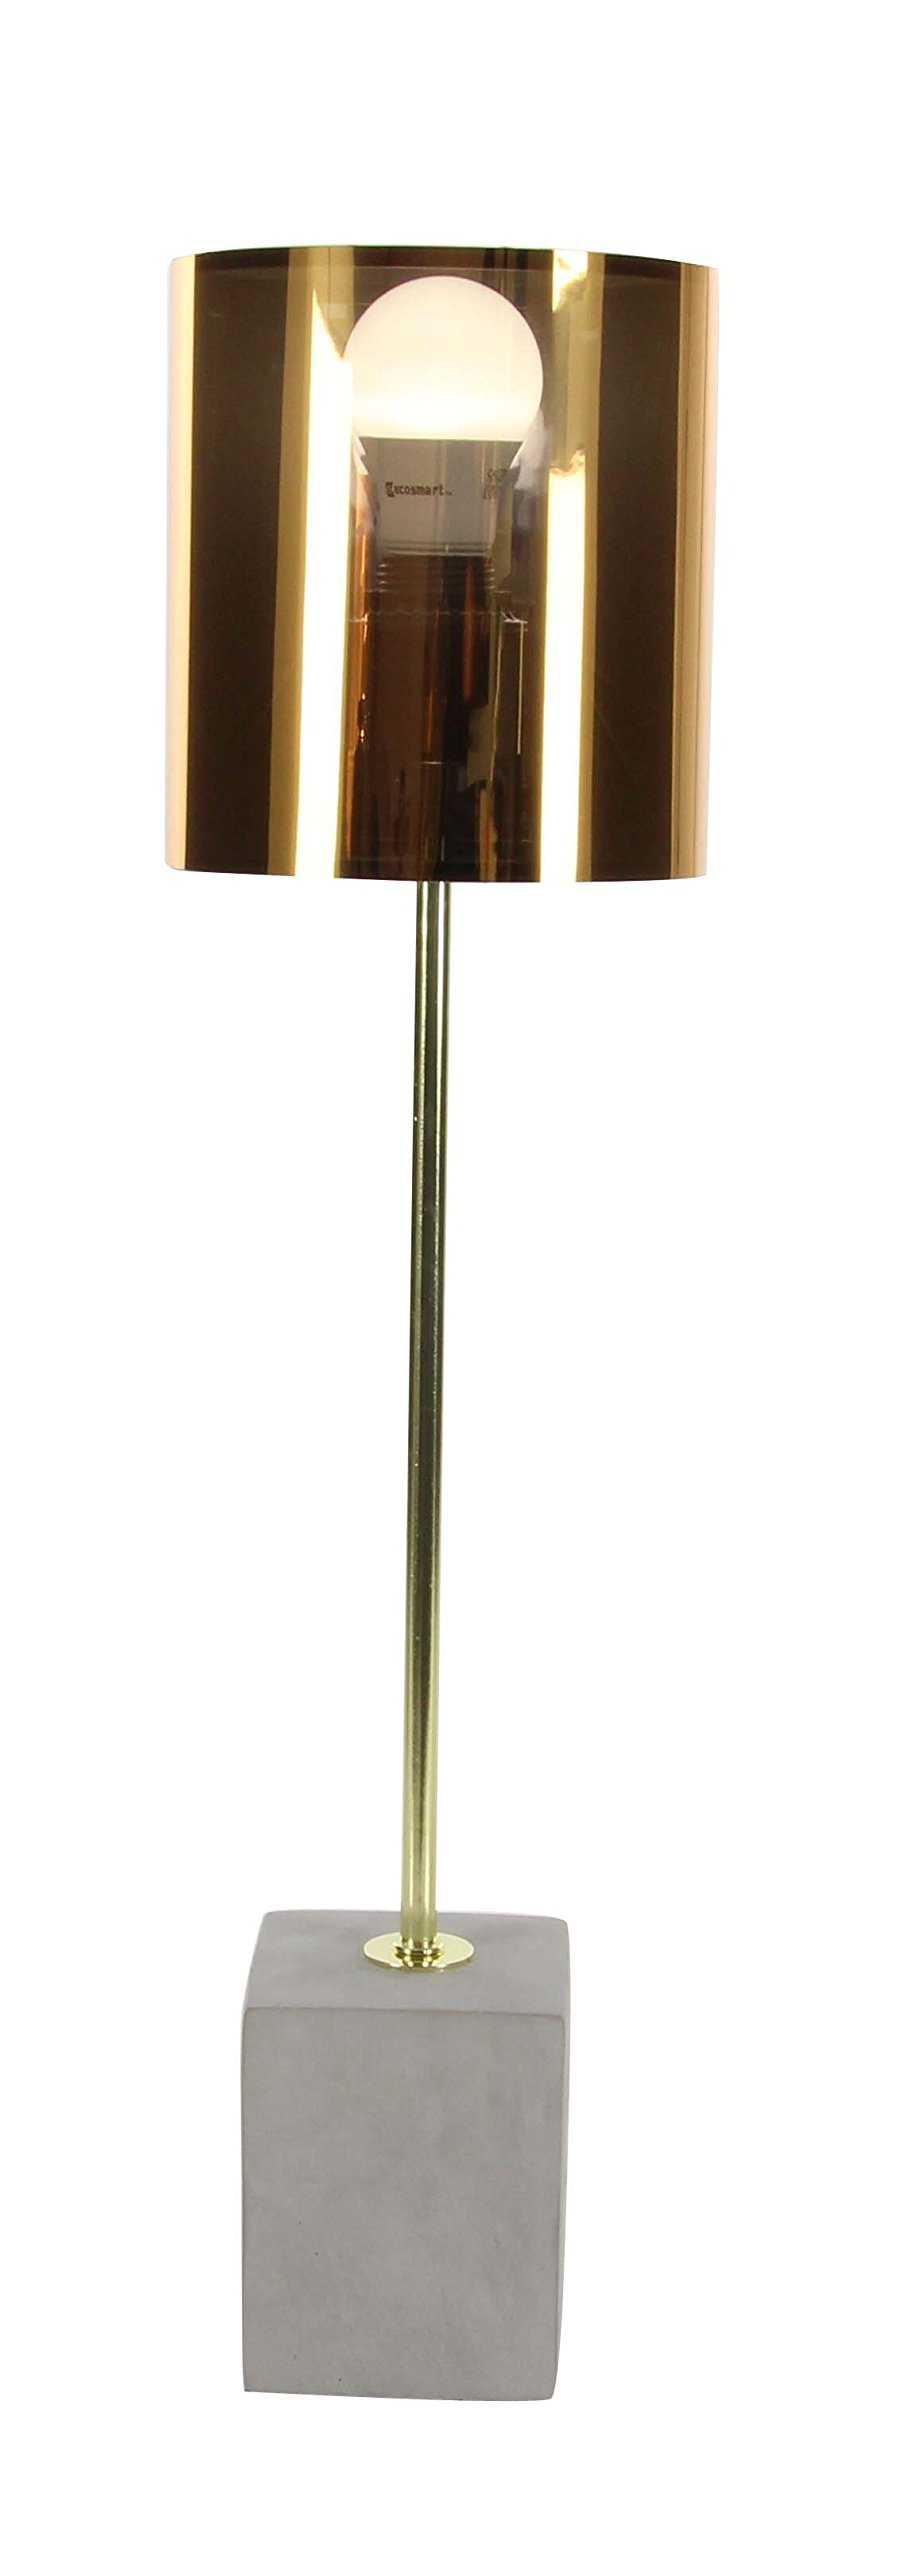 Deco 79 58692 Gold Iron and Concrete Table Lamp, Gold/Gray, 2 Piece